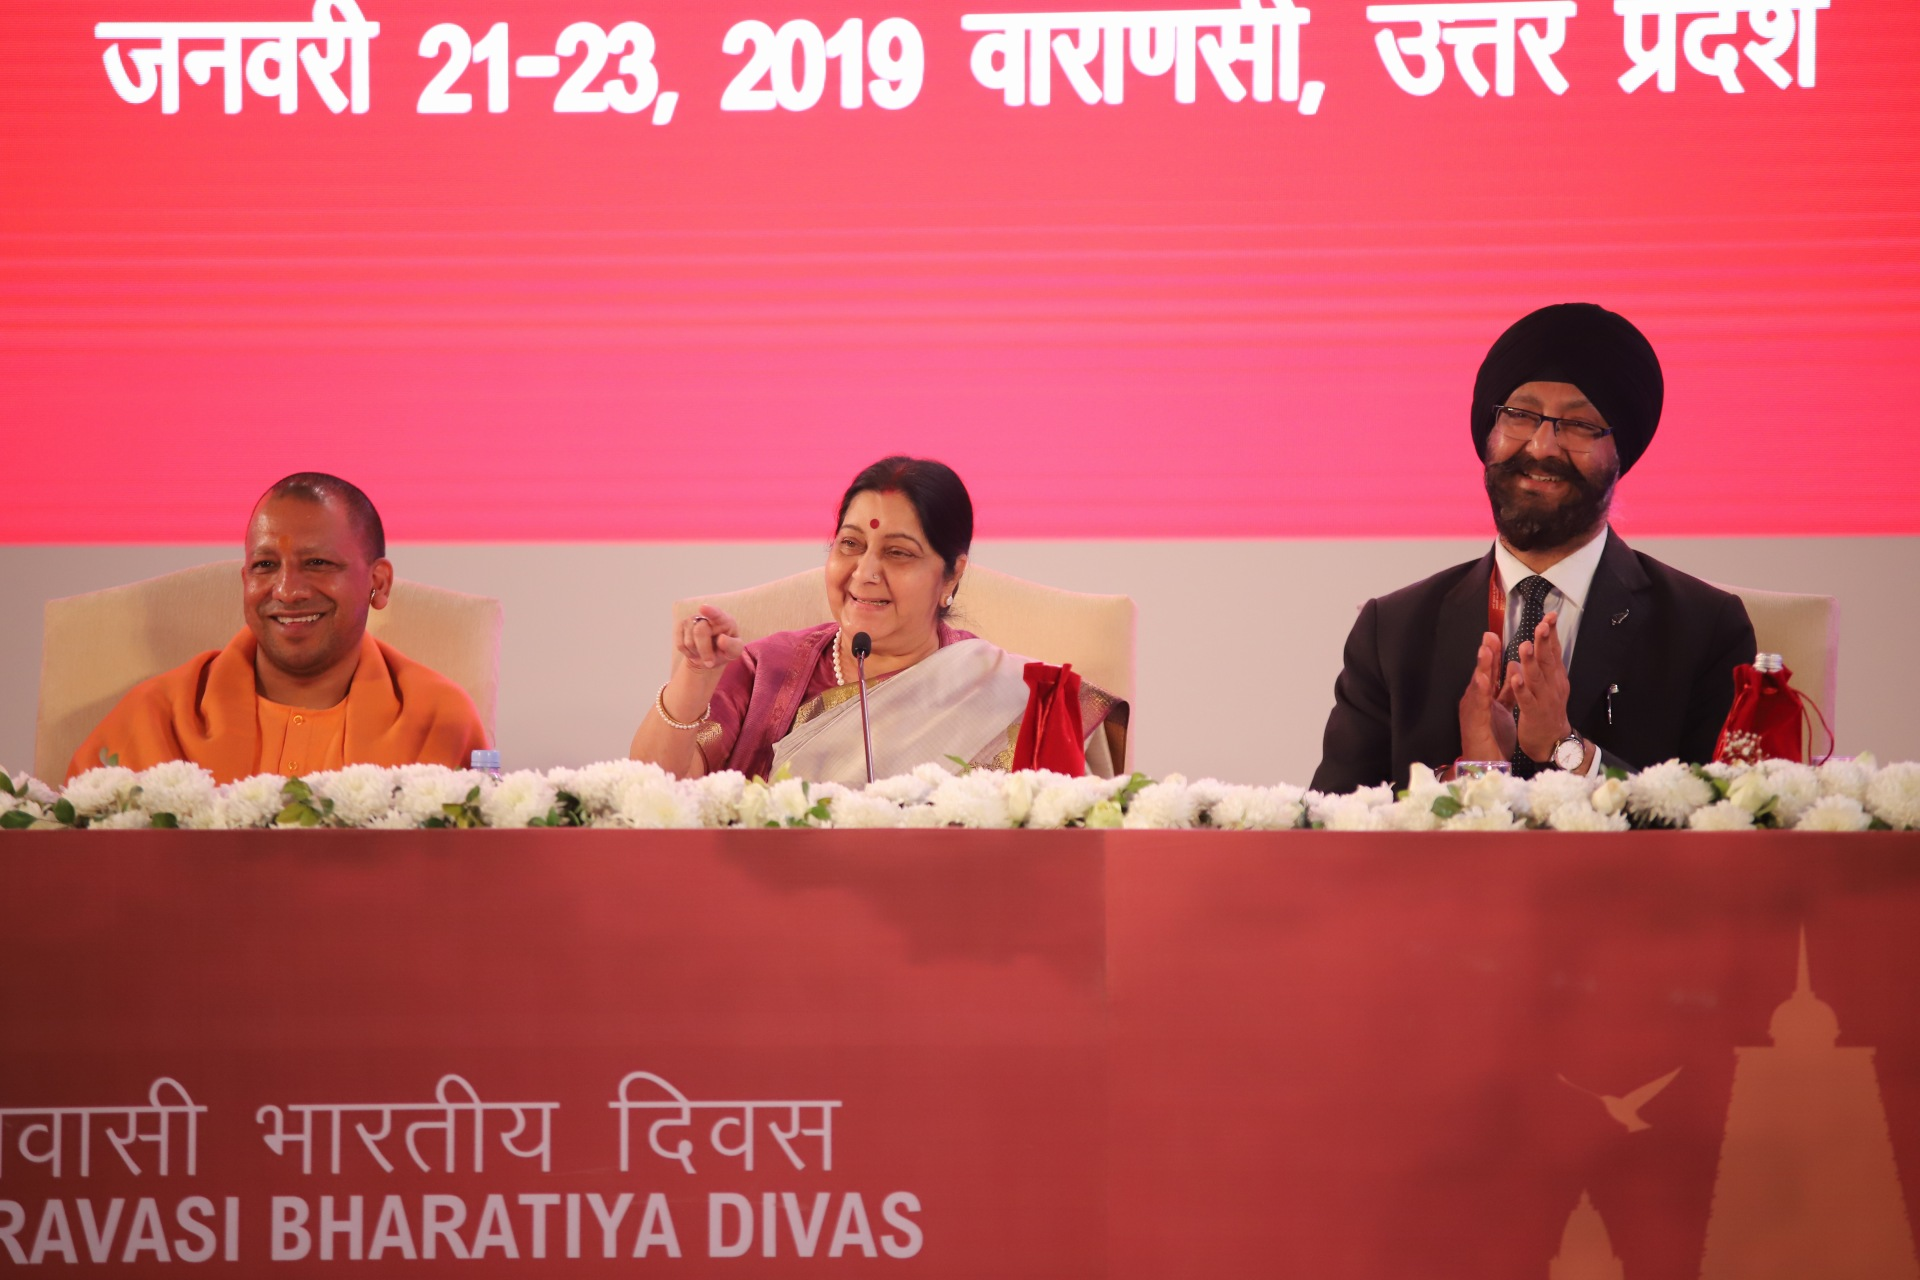 External Affairs Minister address the inauguration of youth pravasi bharatiya divas-2019 in varanasi